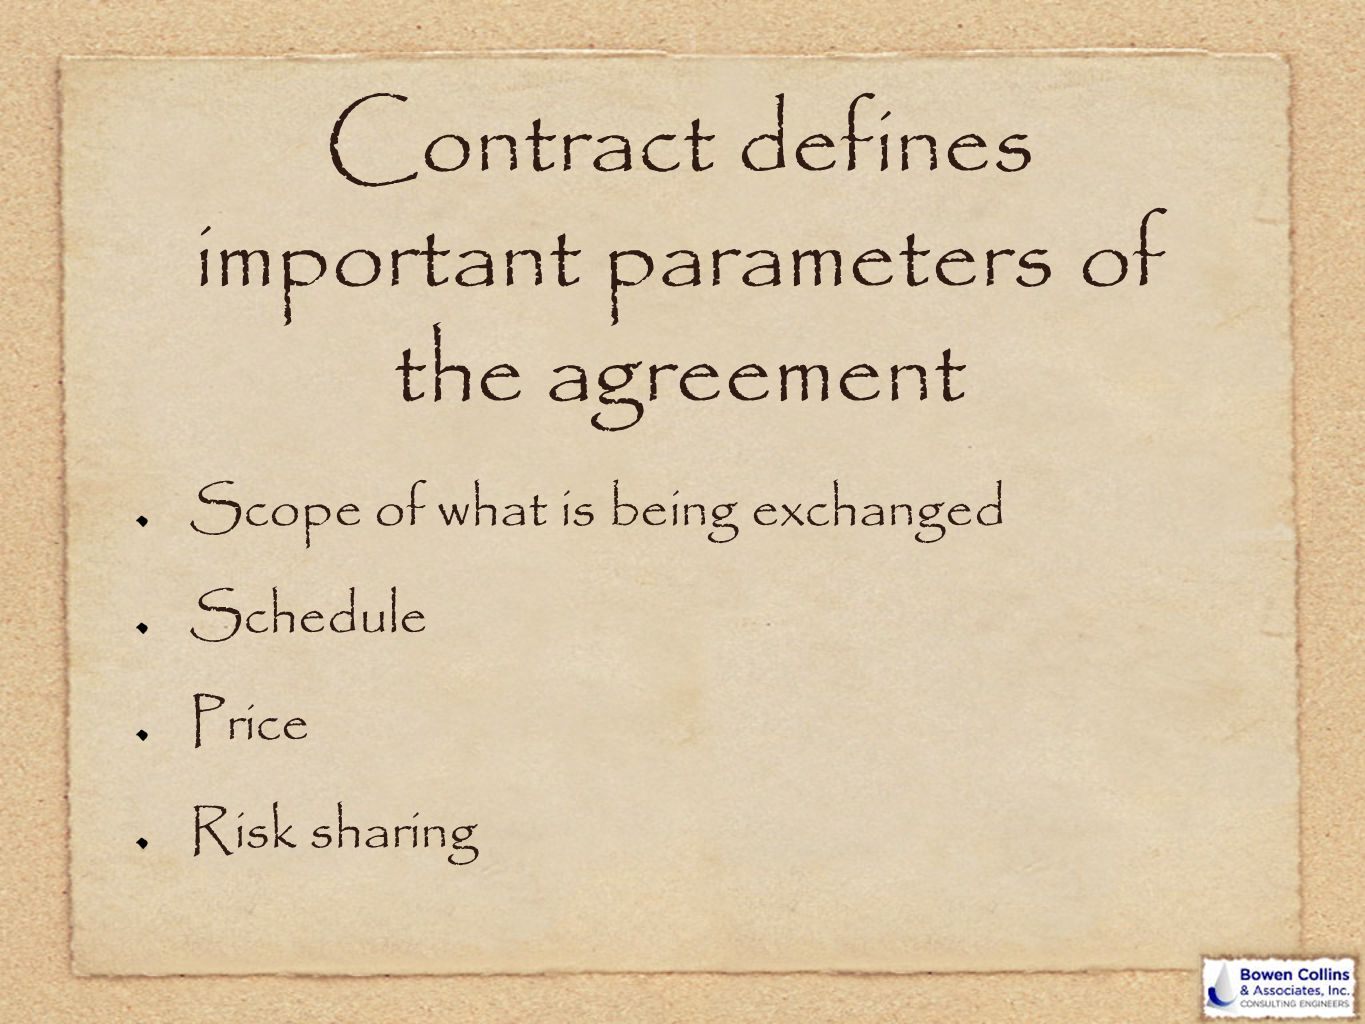 Contract defines important parameters of the agreement